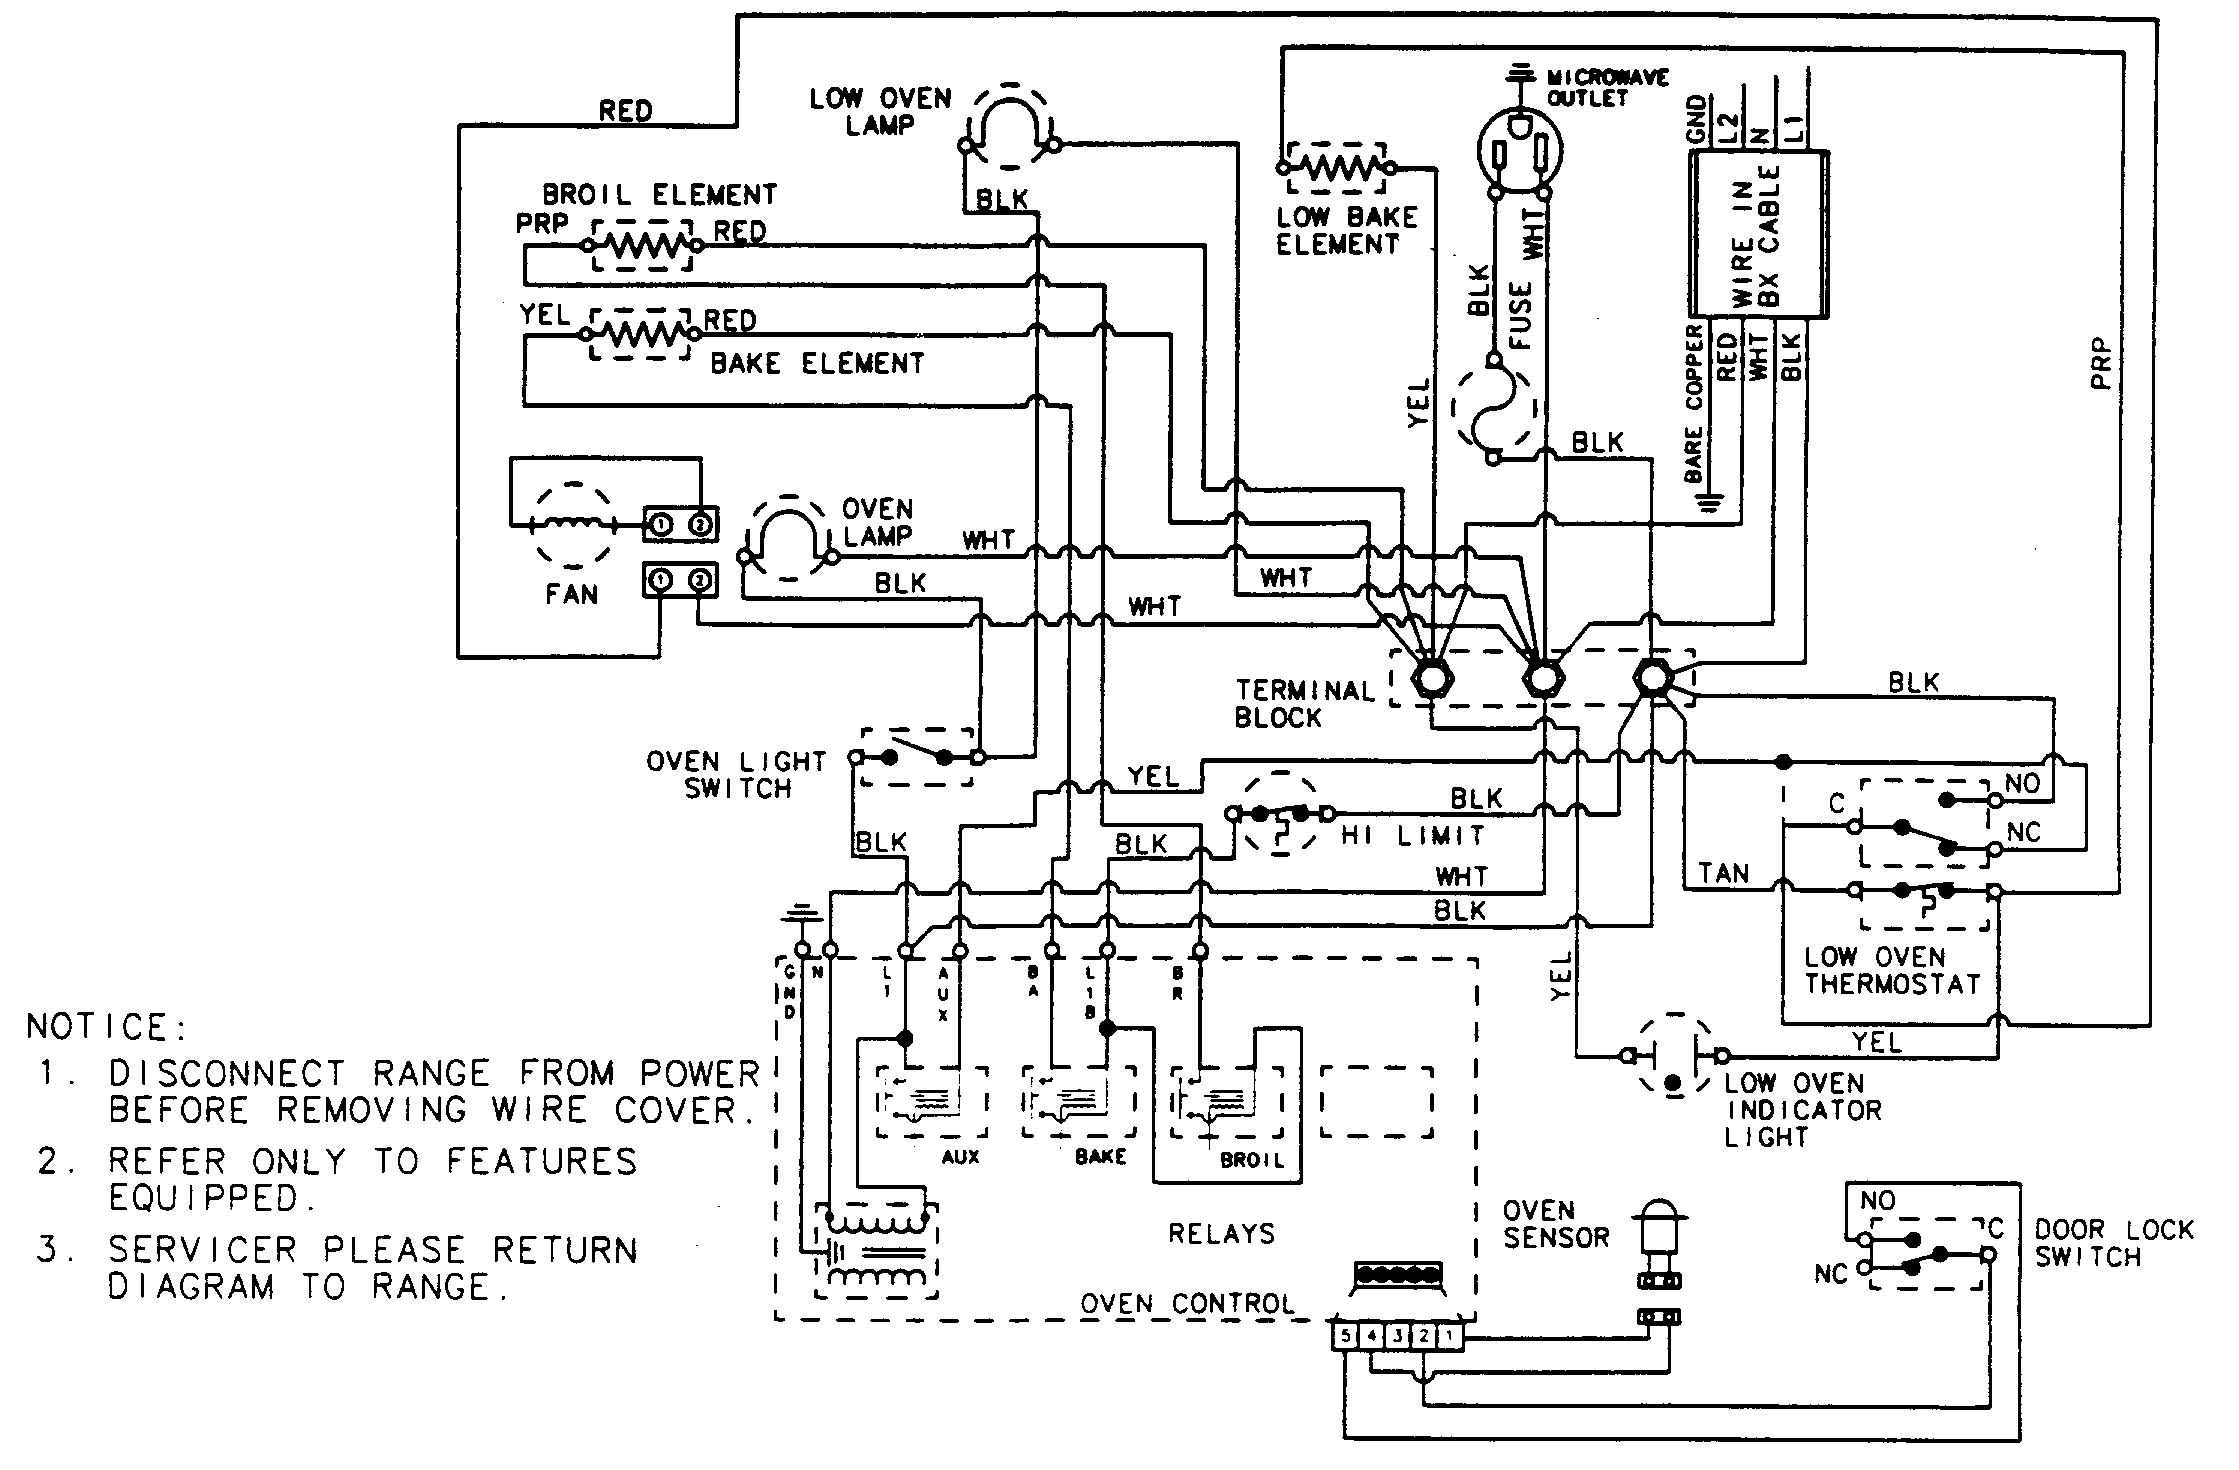 wiring information parts magic chef 9825vuv electric oven timer stove clocks and cooker connection unit wiring diagram at edmiracle.co